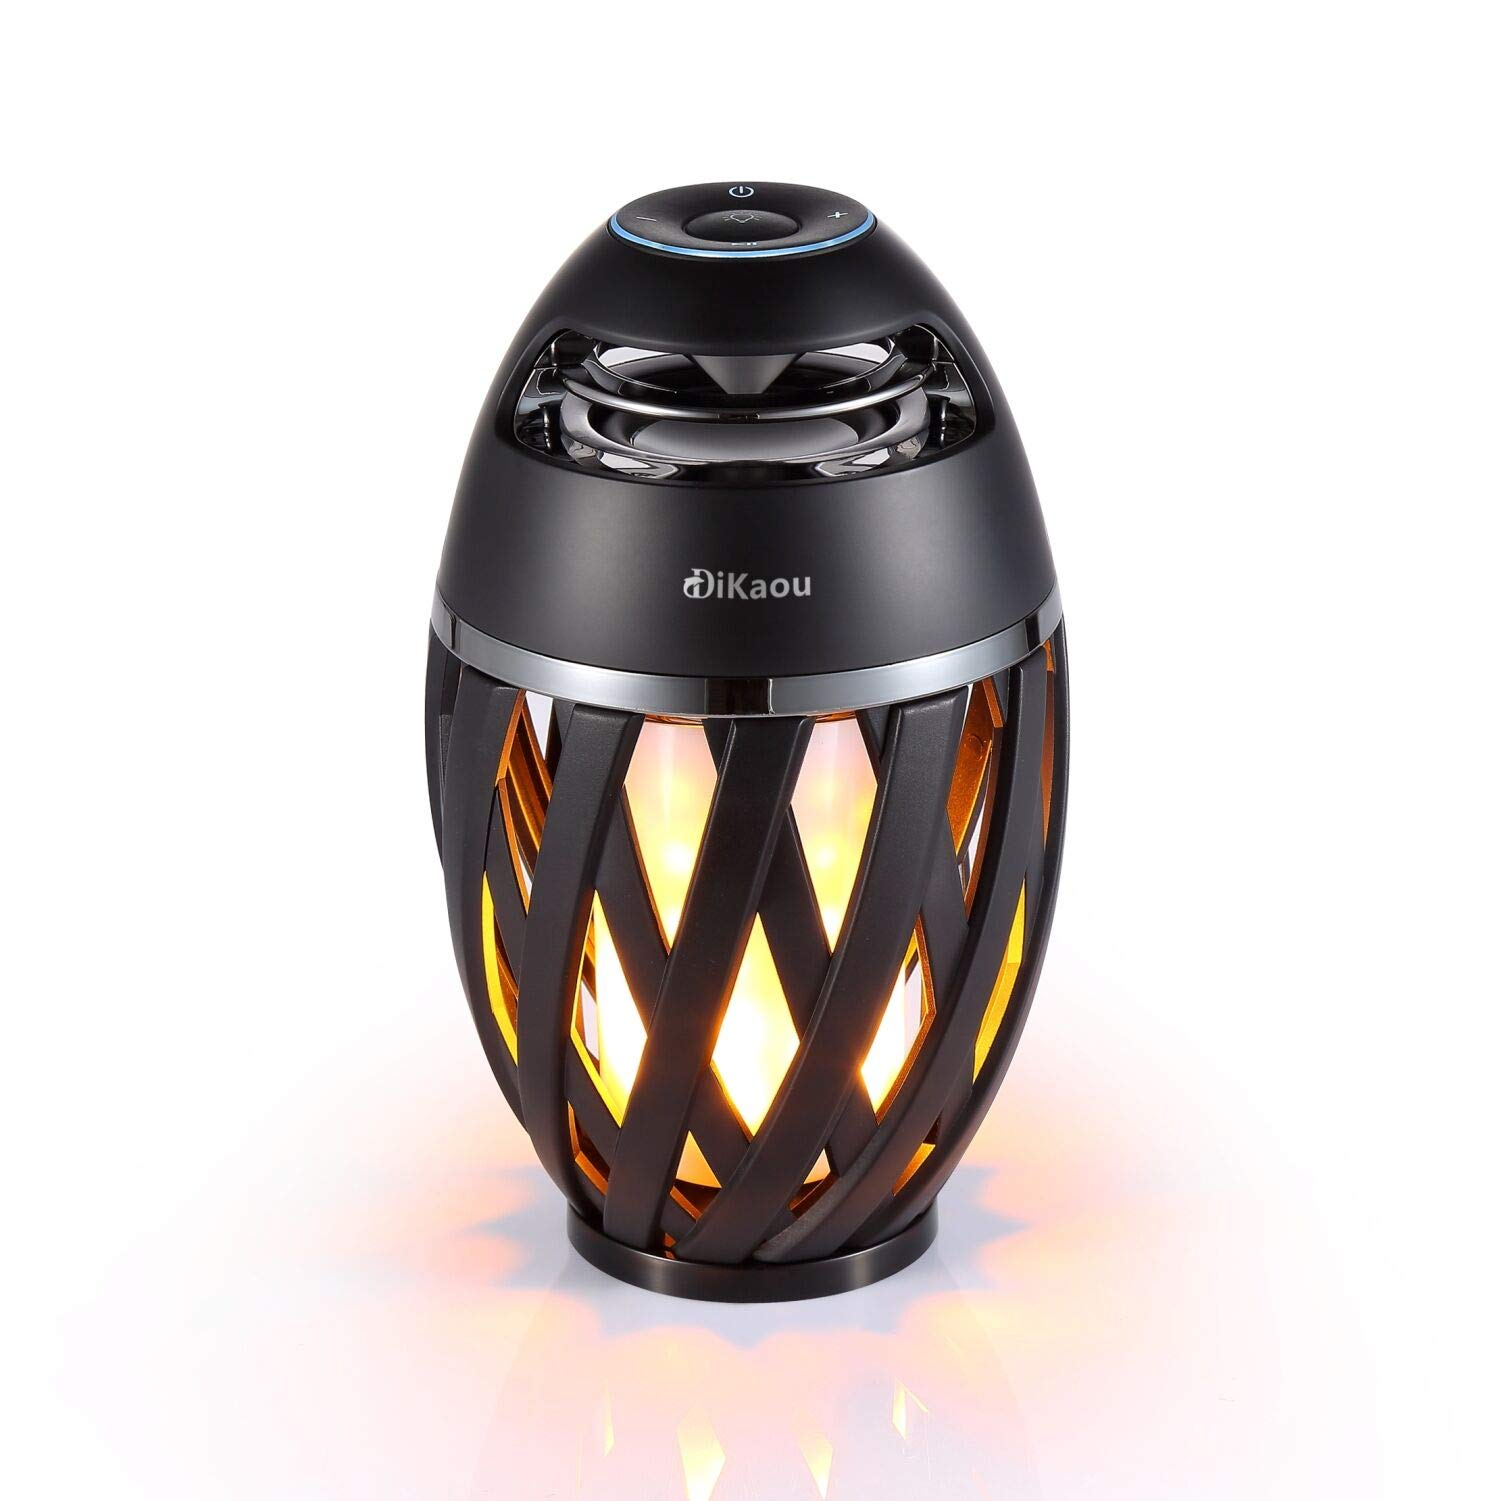 DIKAOU Led flame table lamp, Torch atmosphere Bluetooth speakers&Outdoor Portable Stereo Speaker with HD Audio and Enhanced Bass,LED flickers warm yellow lights BT4.2 for iPhone/iPad /Android by DiKaou